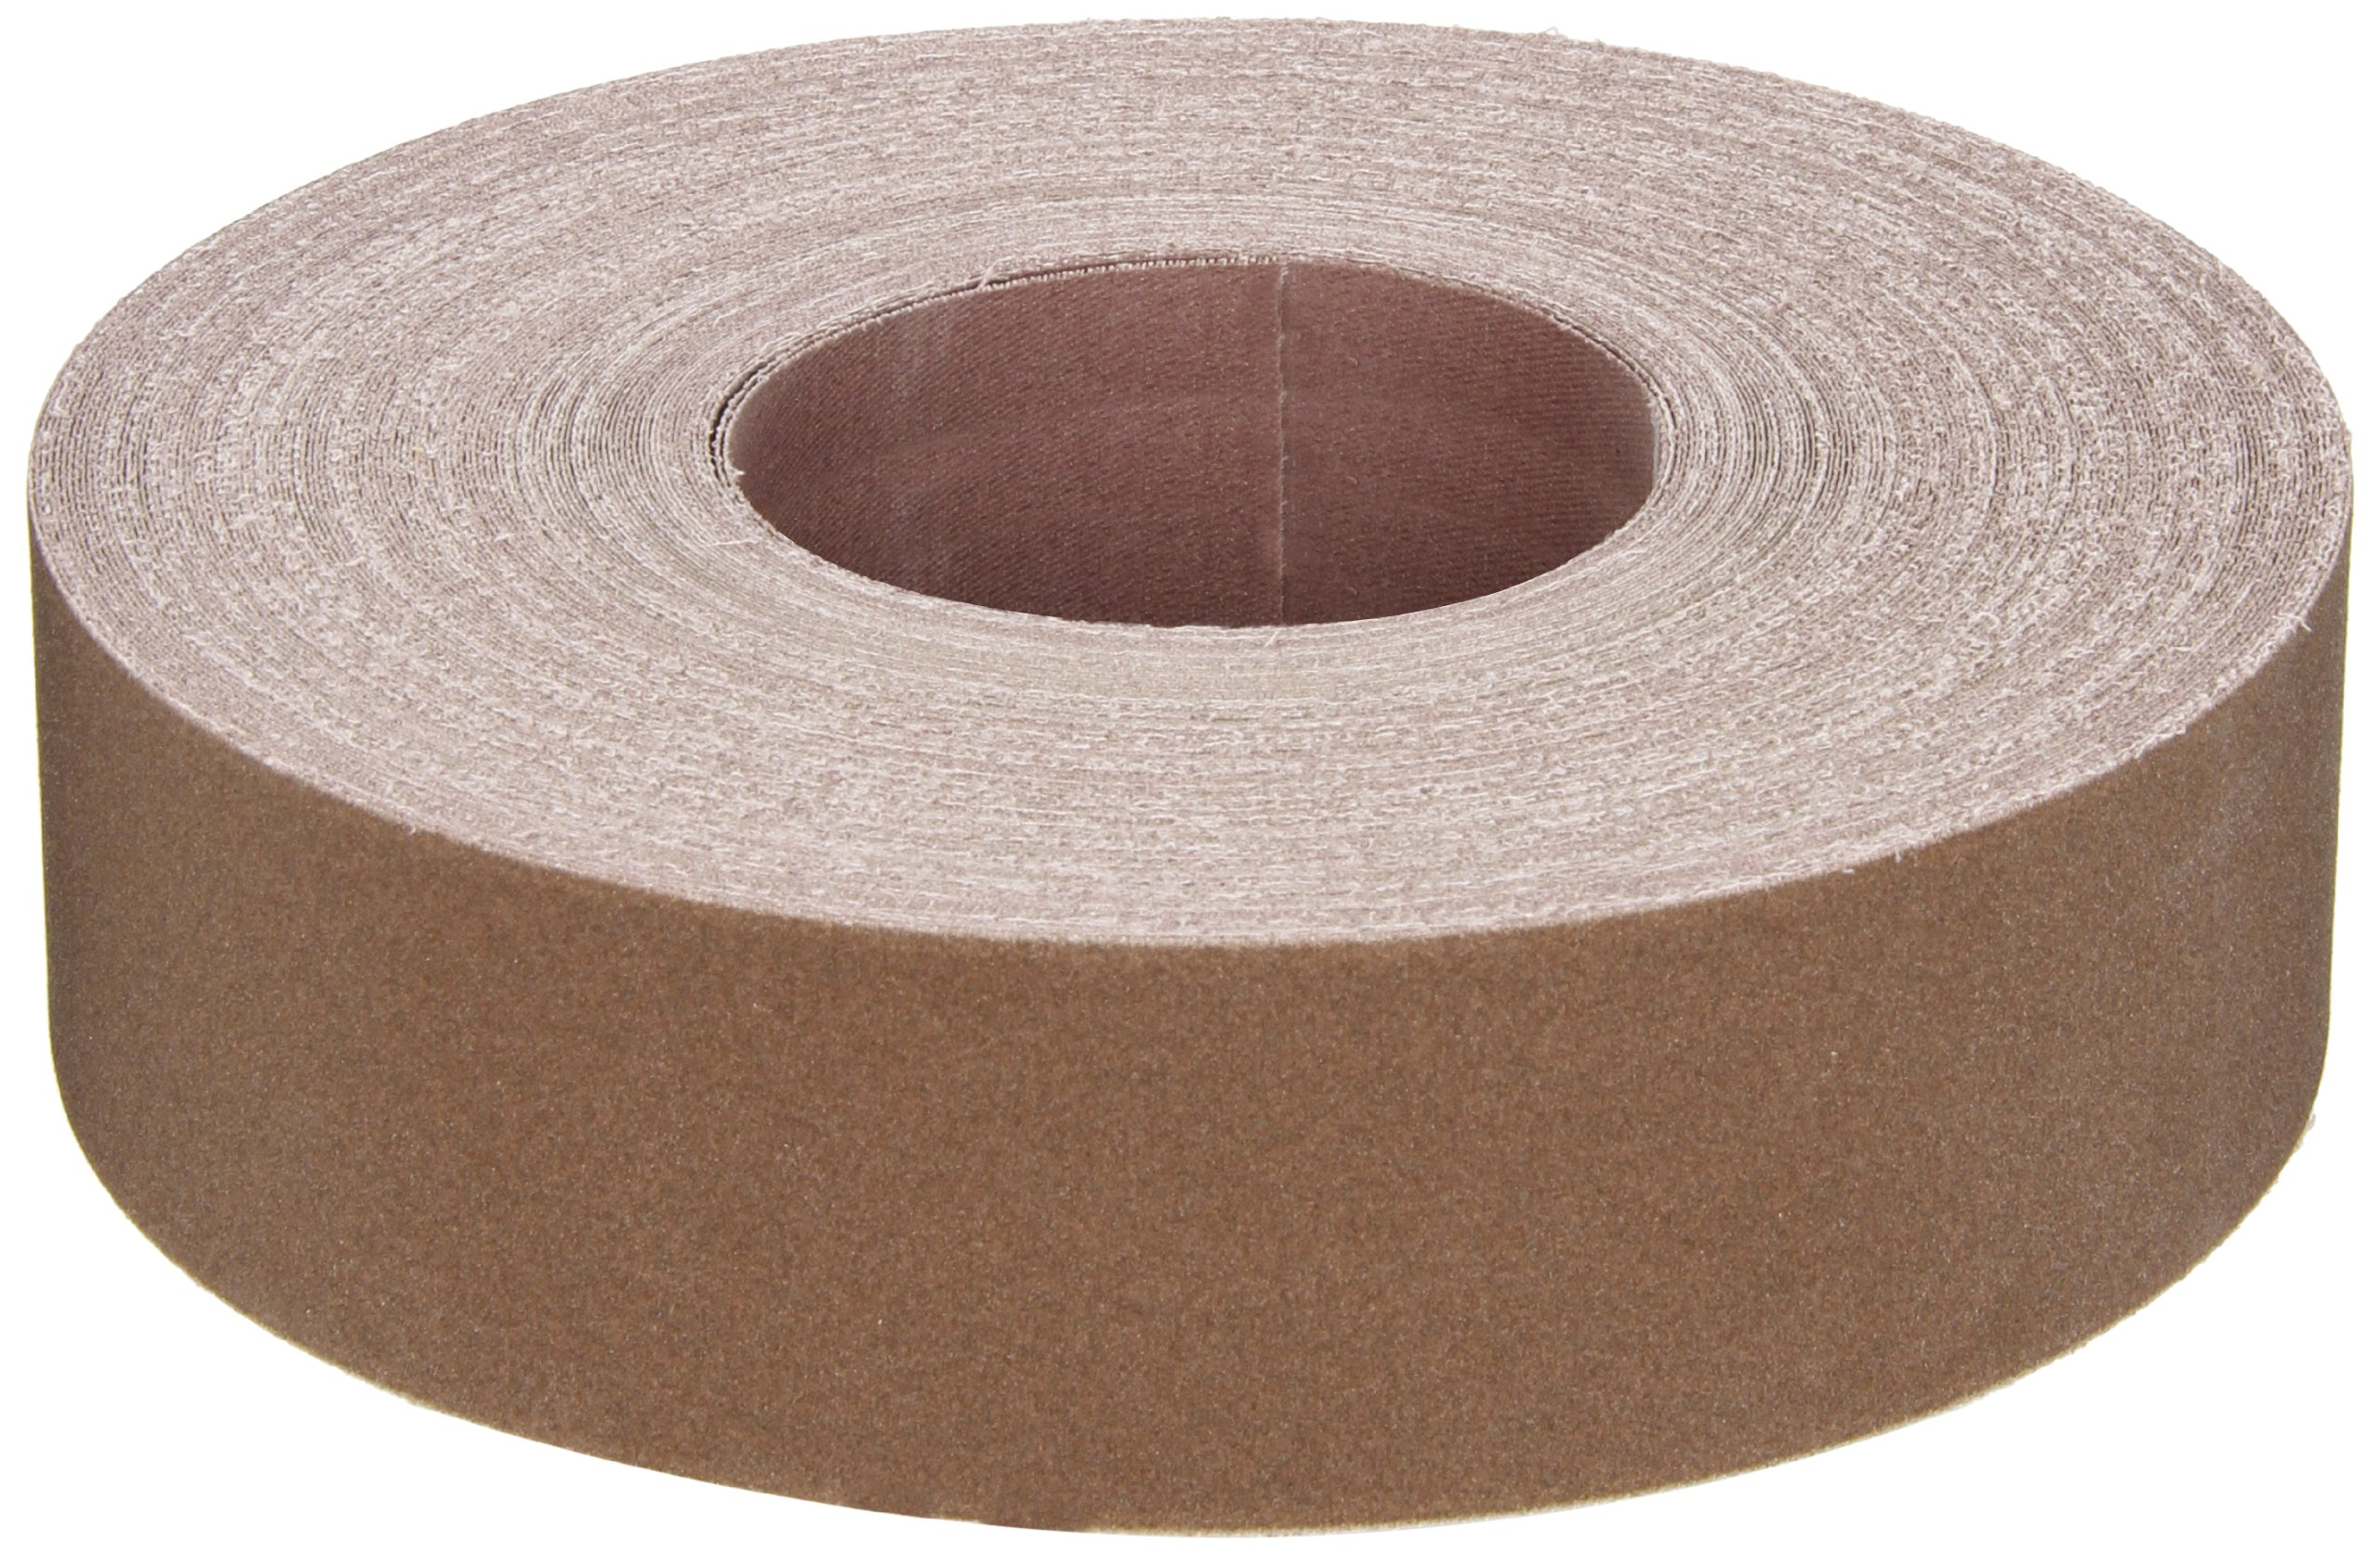 Norton K225 Metalite Abrasive Roll, Cloth Backing, Aluminum Oxide, 2'' Width x 50yd Length, Grit P180 (Pack of 5) by Norton Abrasives - St. Gobain